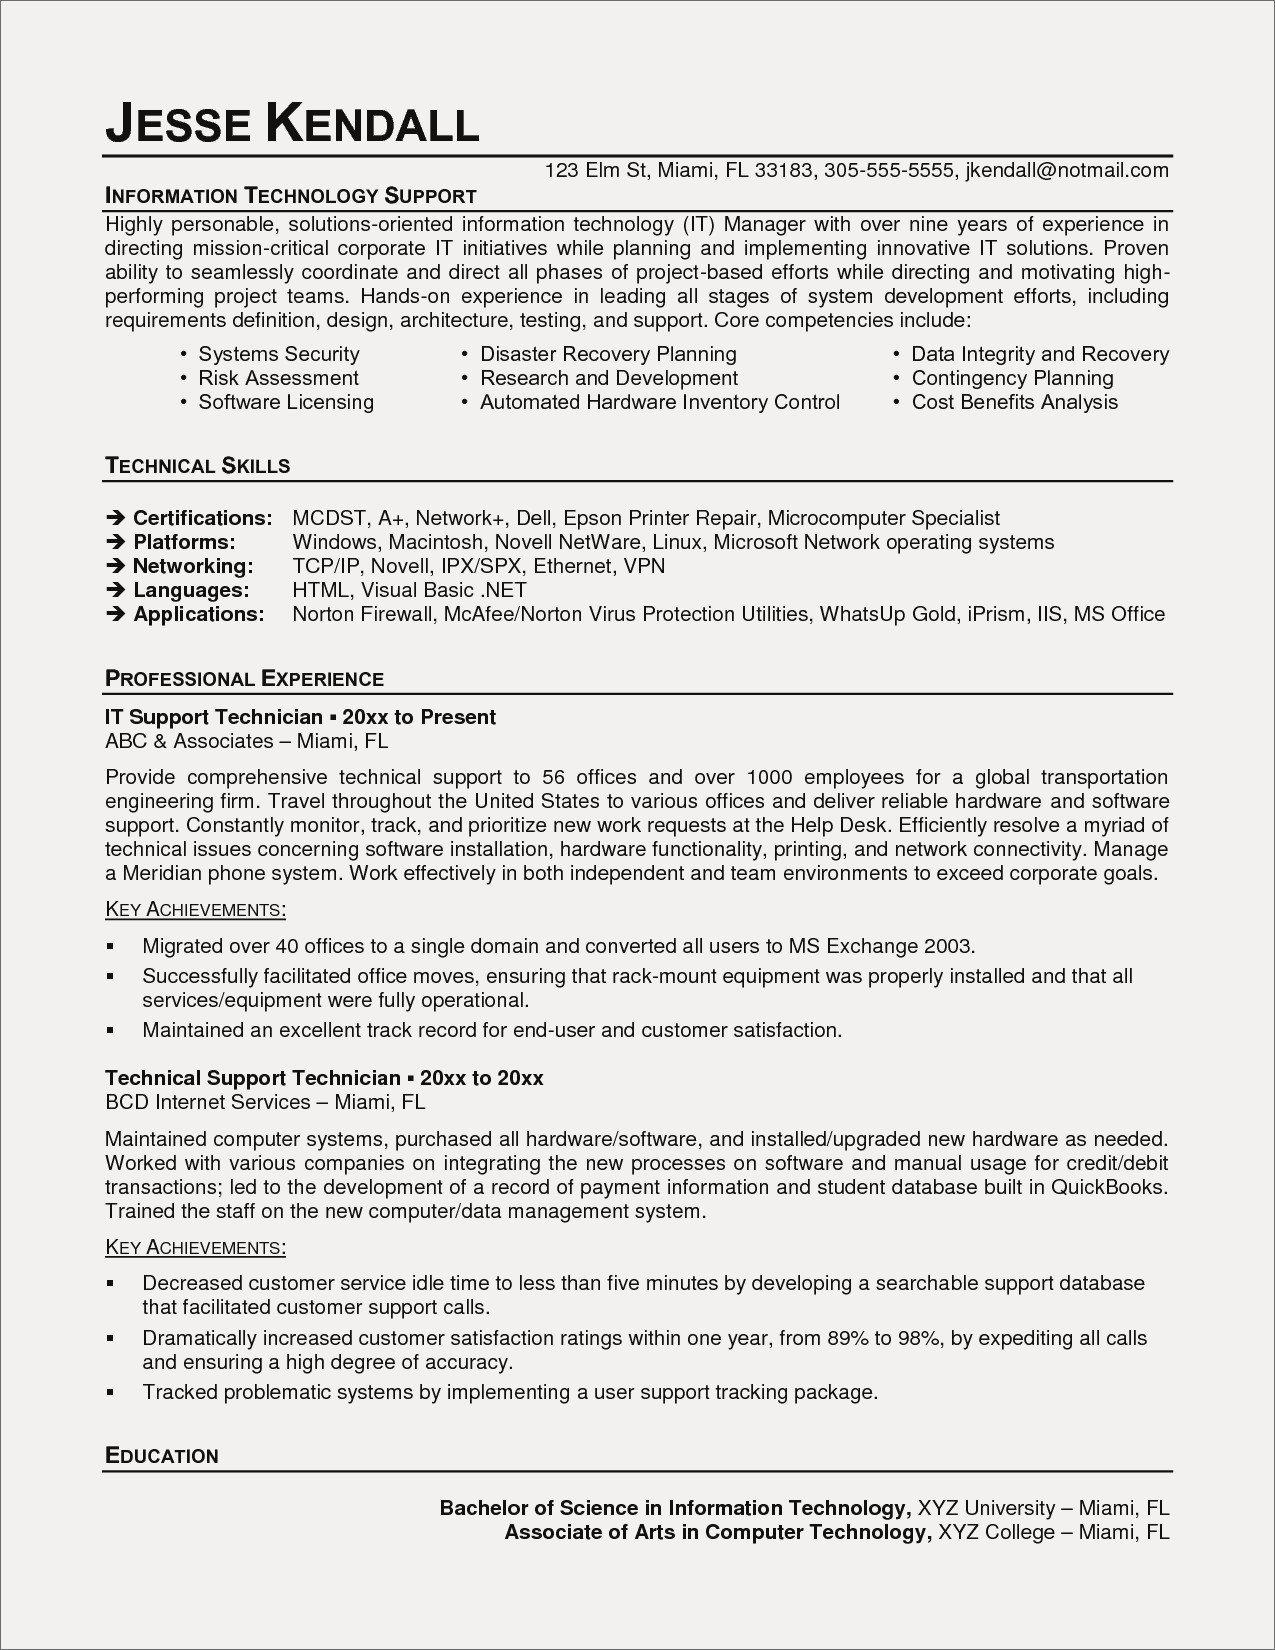 auto mechanic resume template Collection-Students Resume Samples Valid Auto Mechanic Resume American Resume Sample New Student Resume 0d 2-j